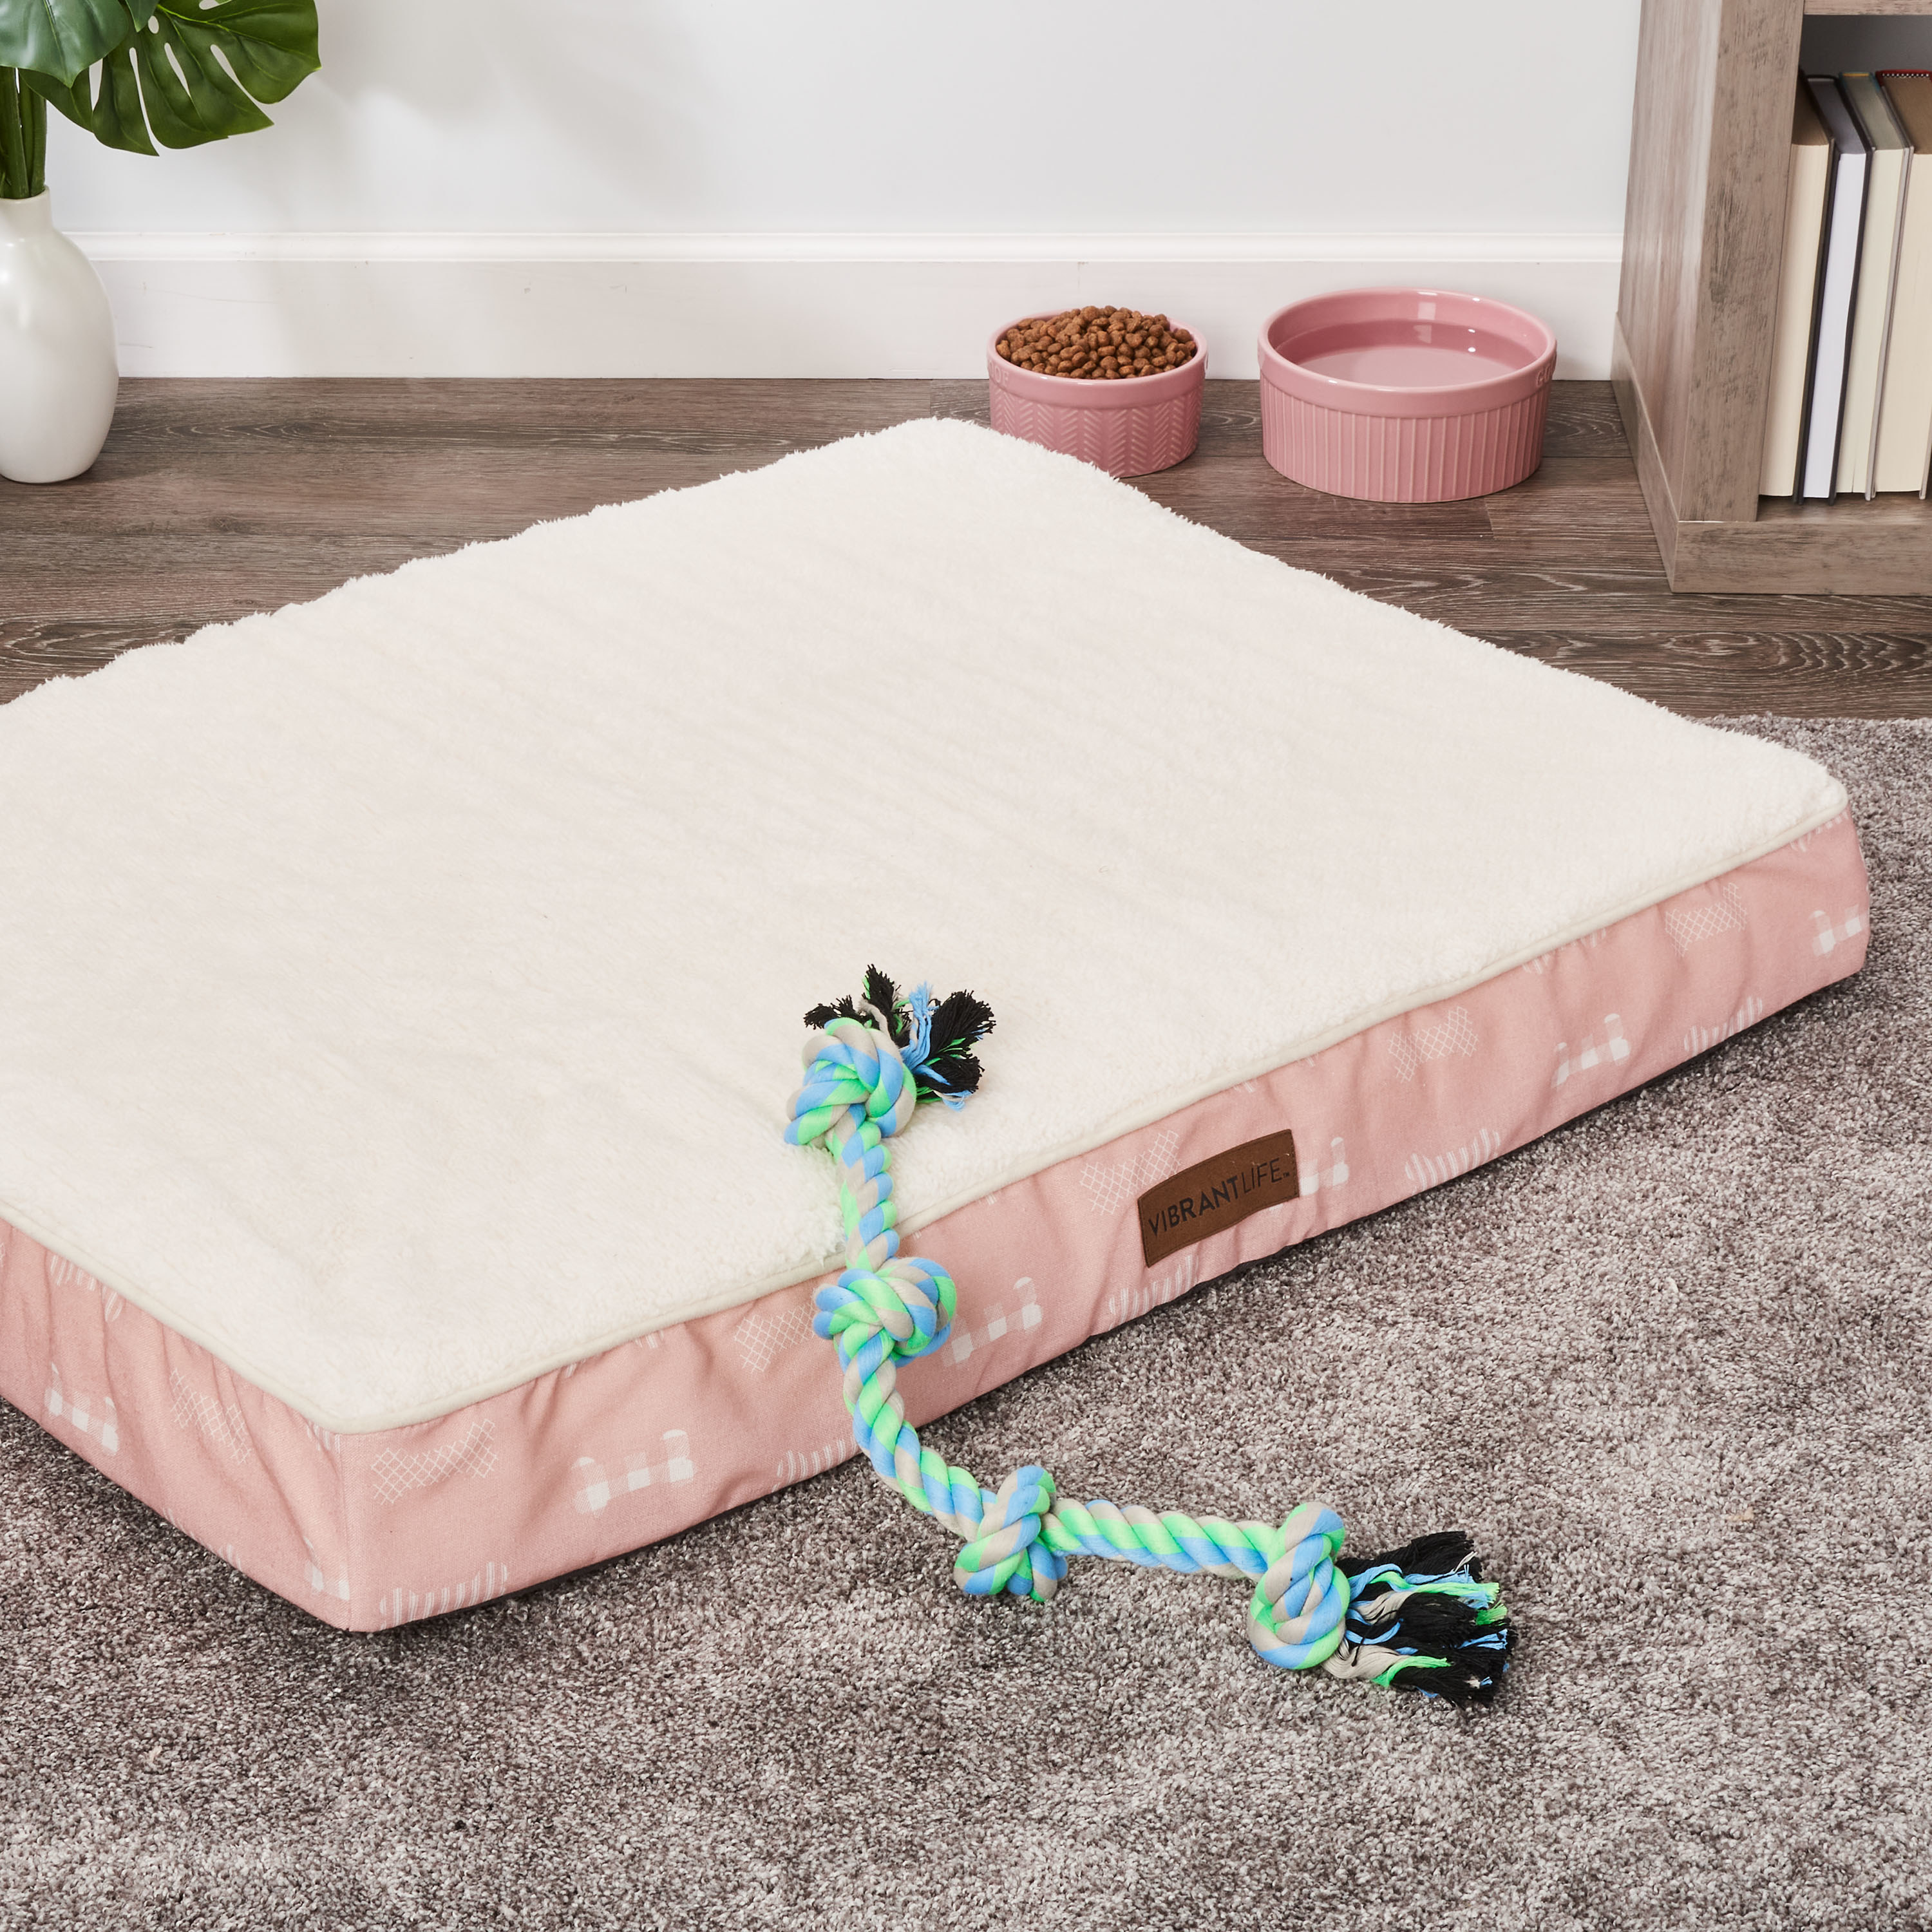 The cherry blossom pet bed